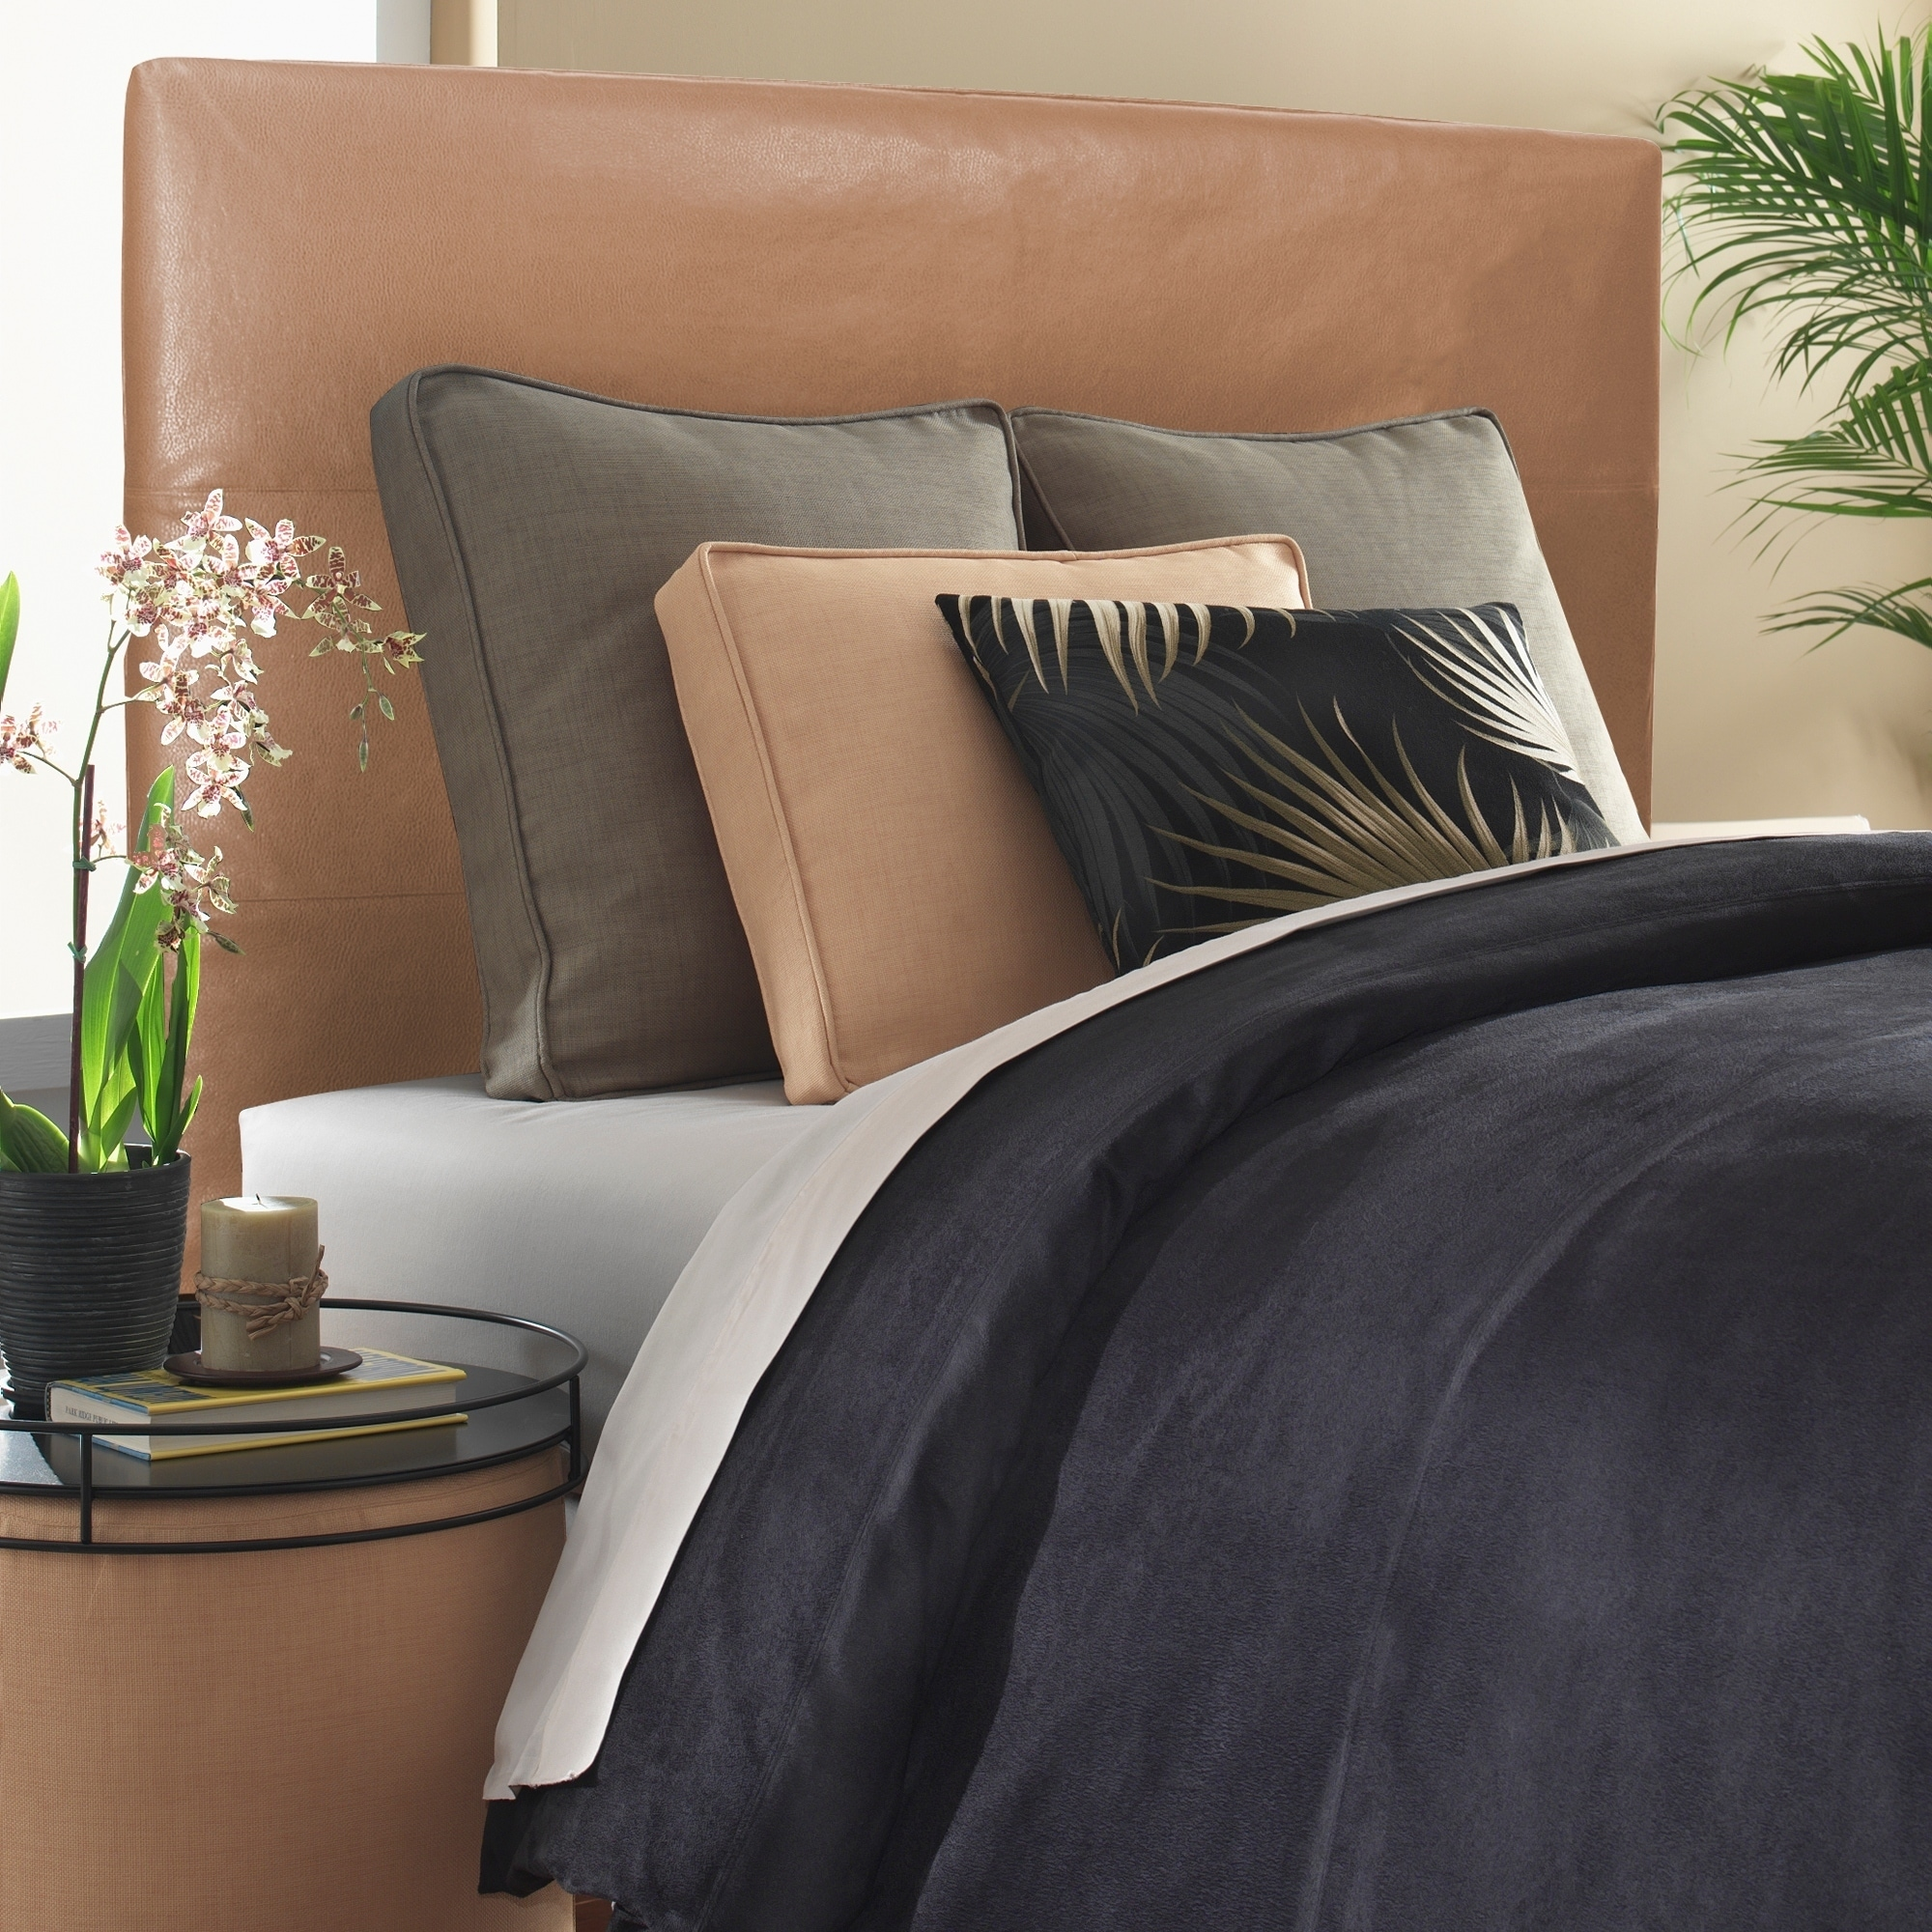 online store 2f211 08632 Slip-covered King-size Bronze Faux Leather Headboard